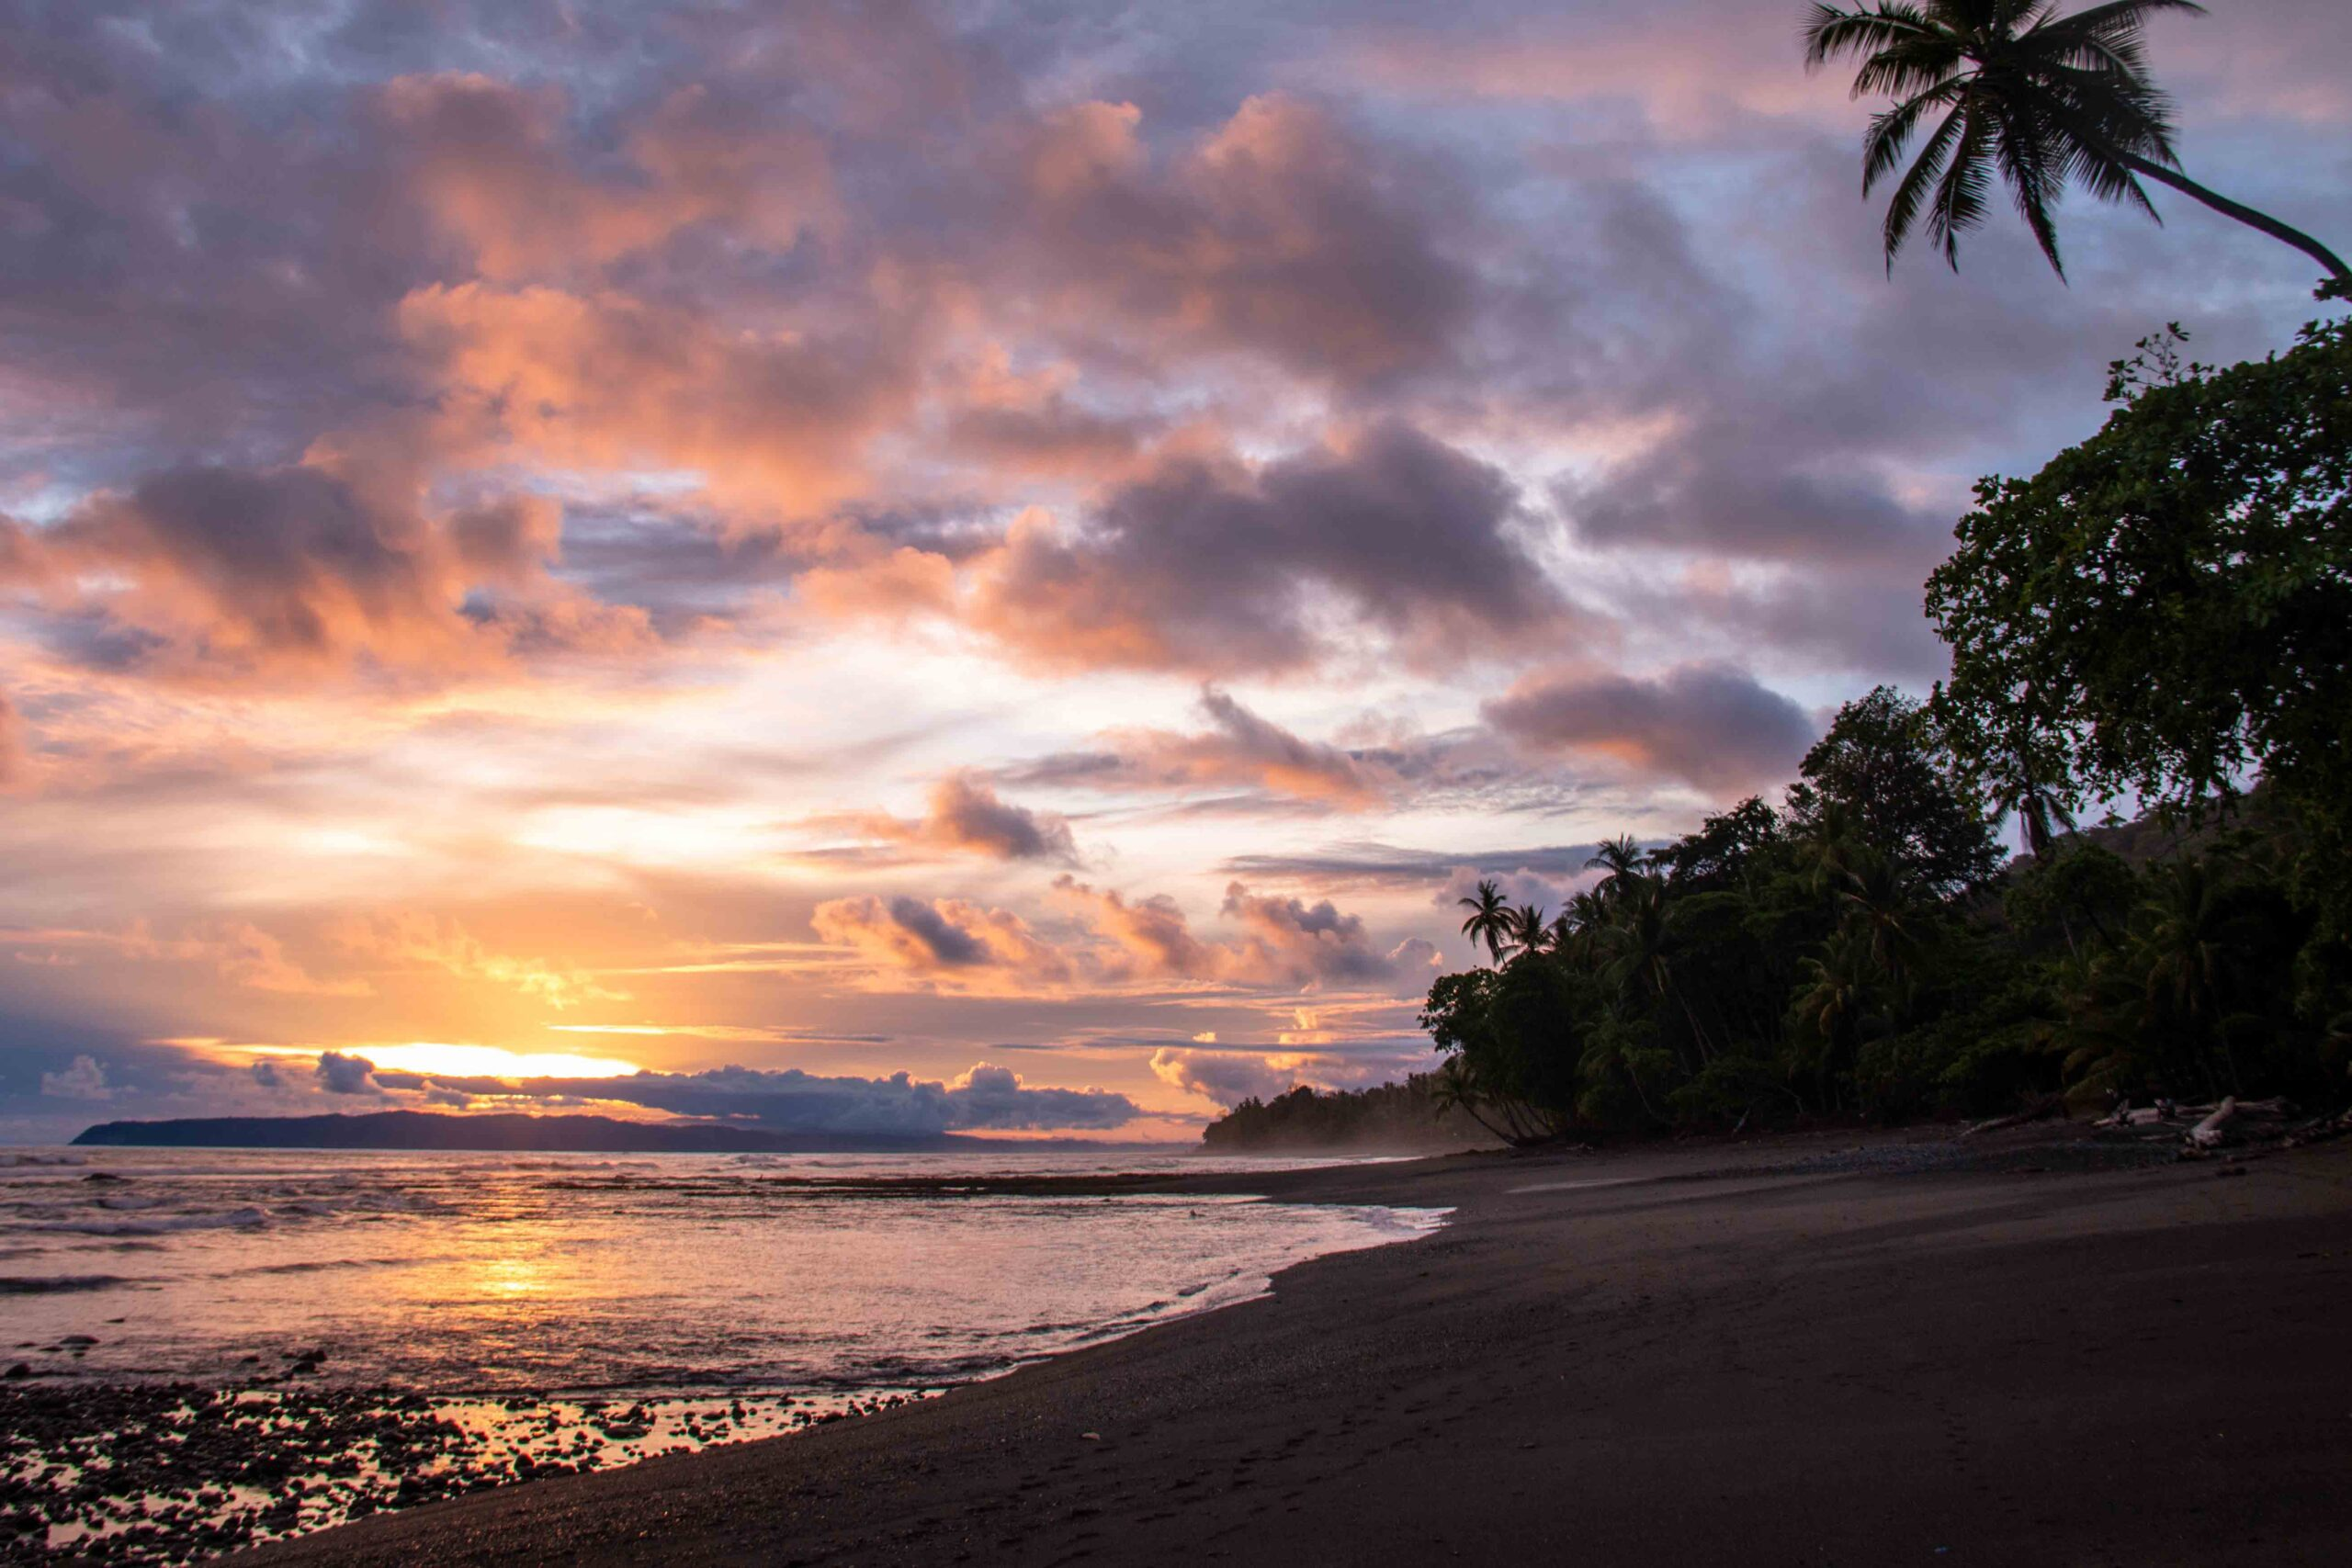 Sunset at Punta Banco Beach in Costa Rica during COVID-19